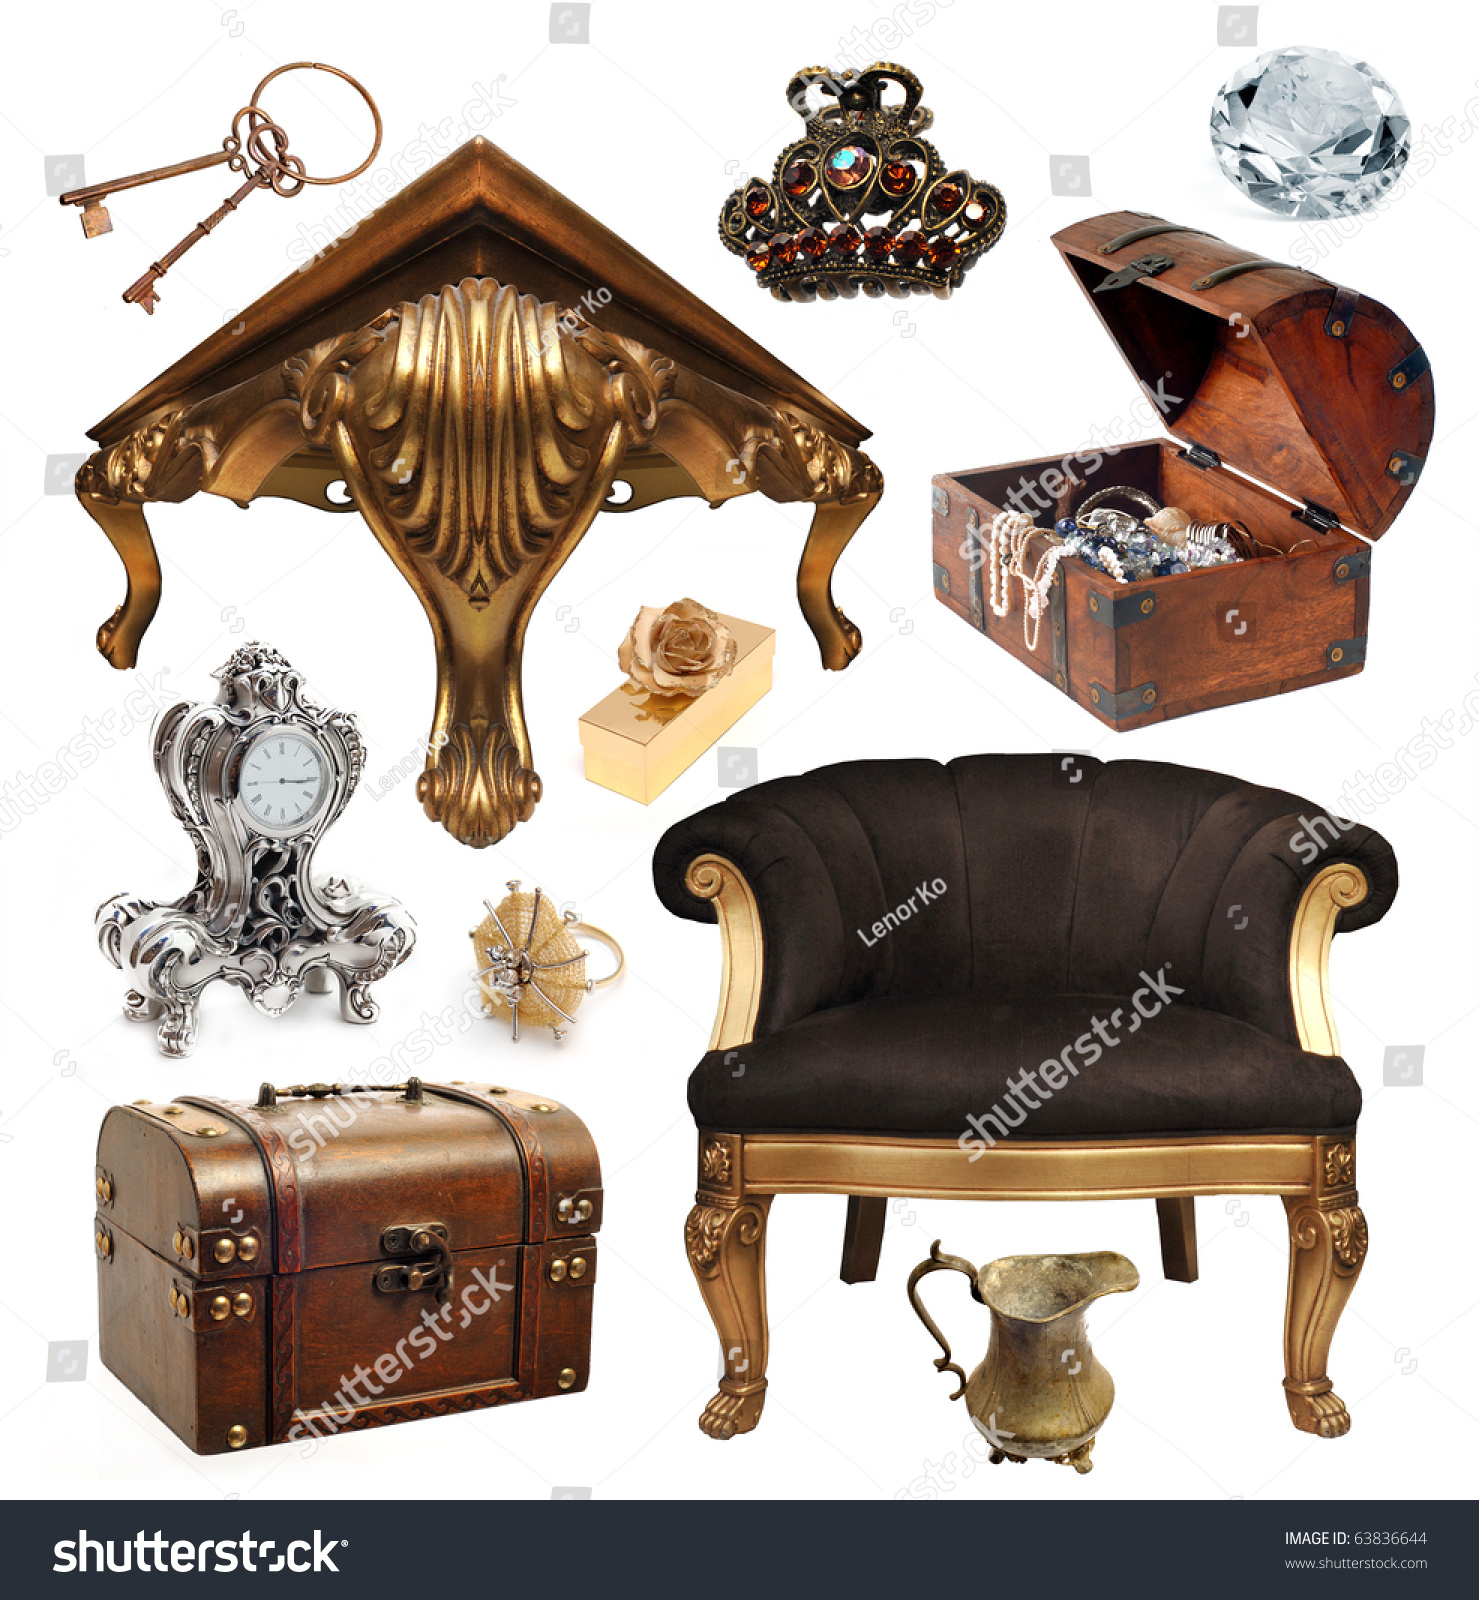 Old objects stock photo 63836644 shutterstock for Old objects